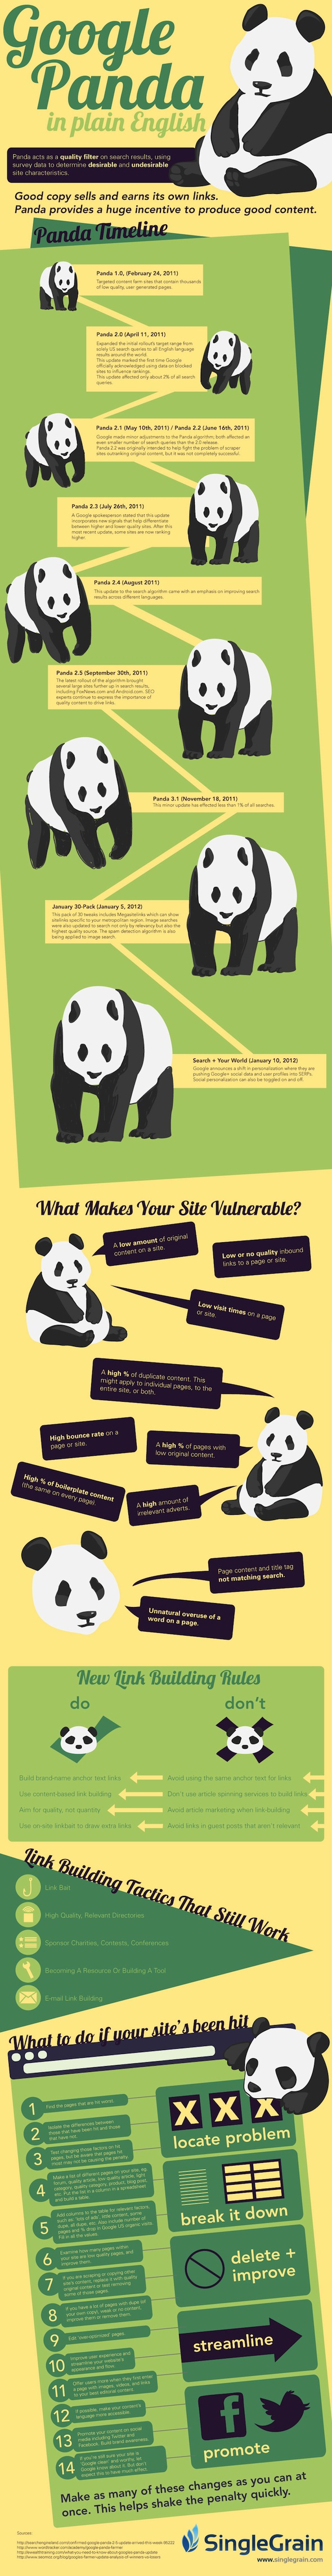 Google Panda 10 Things That Will Land Your Website with a Penalty